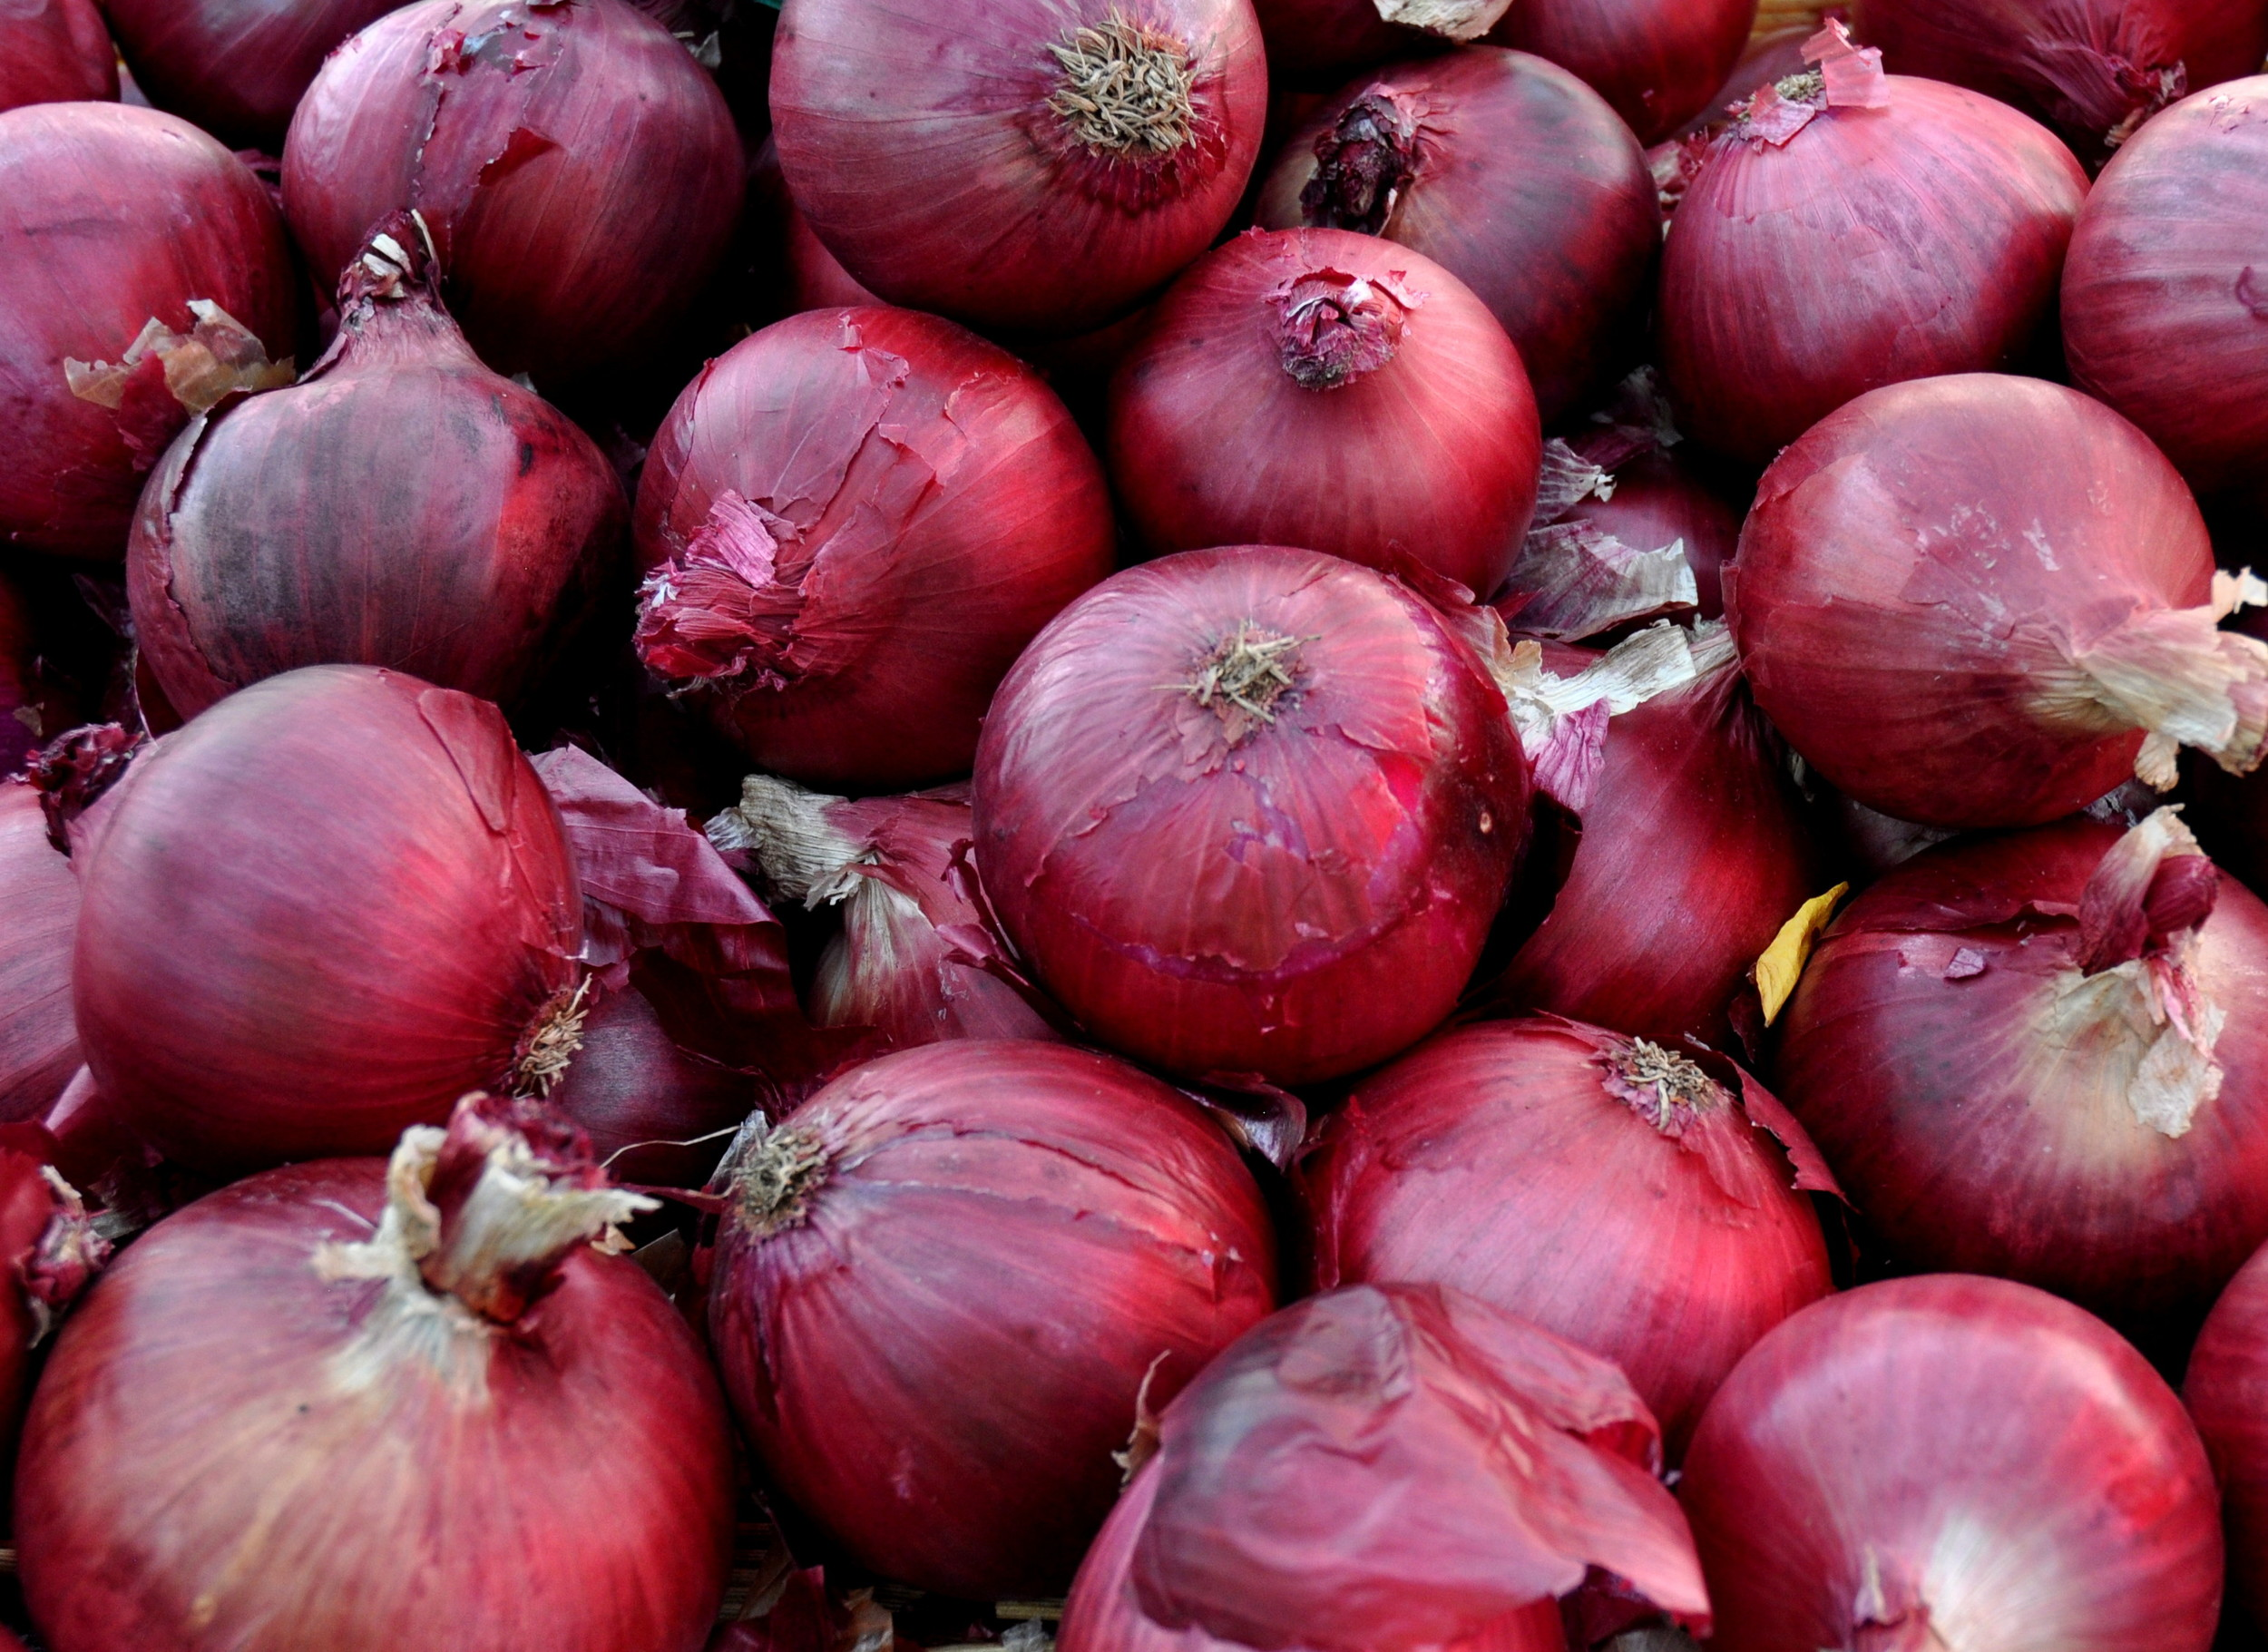 Red storage onions from Colinwood Farm at your Ballard Farmers Market. Copyright Zachary D. Lyons.